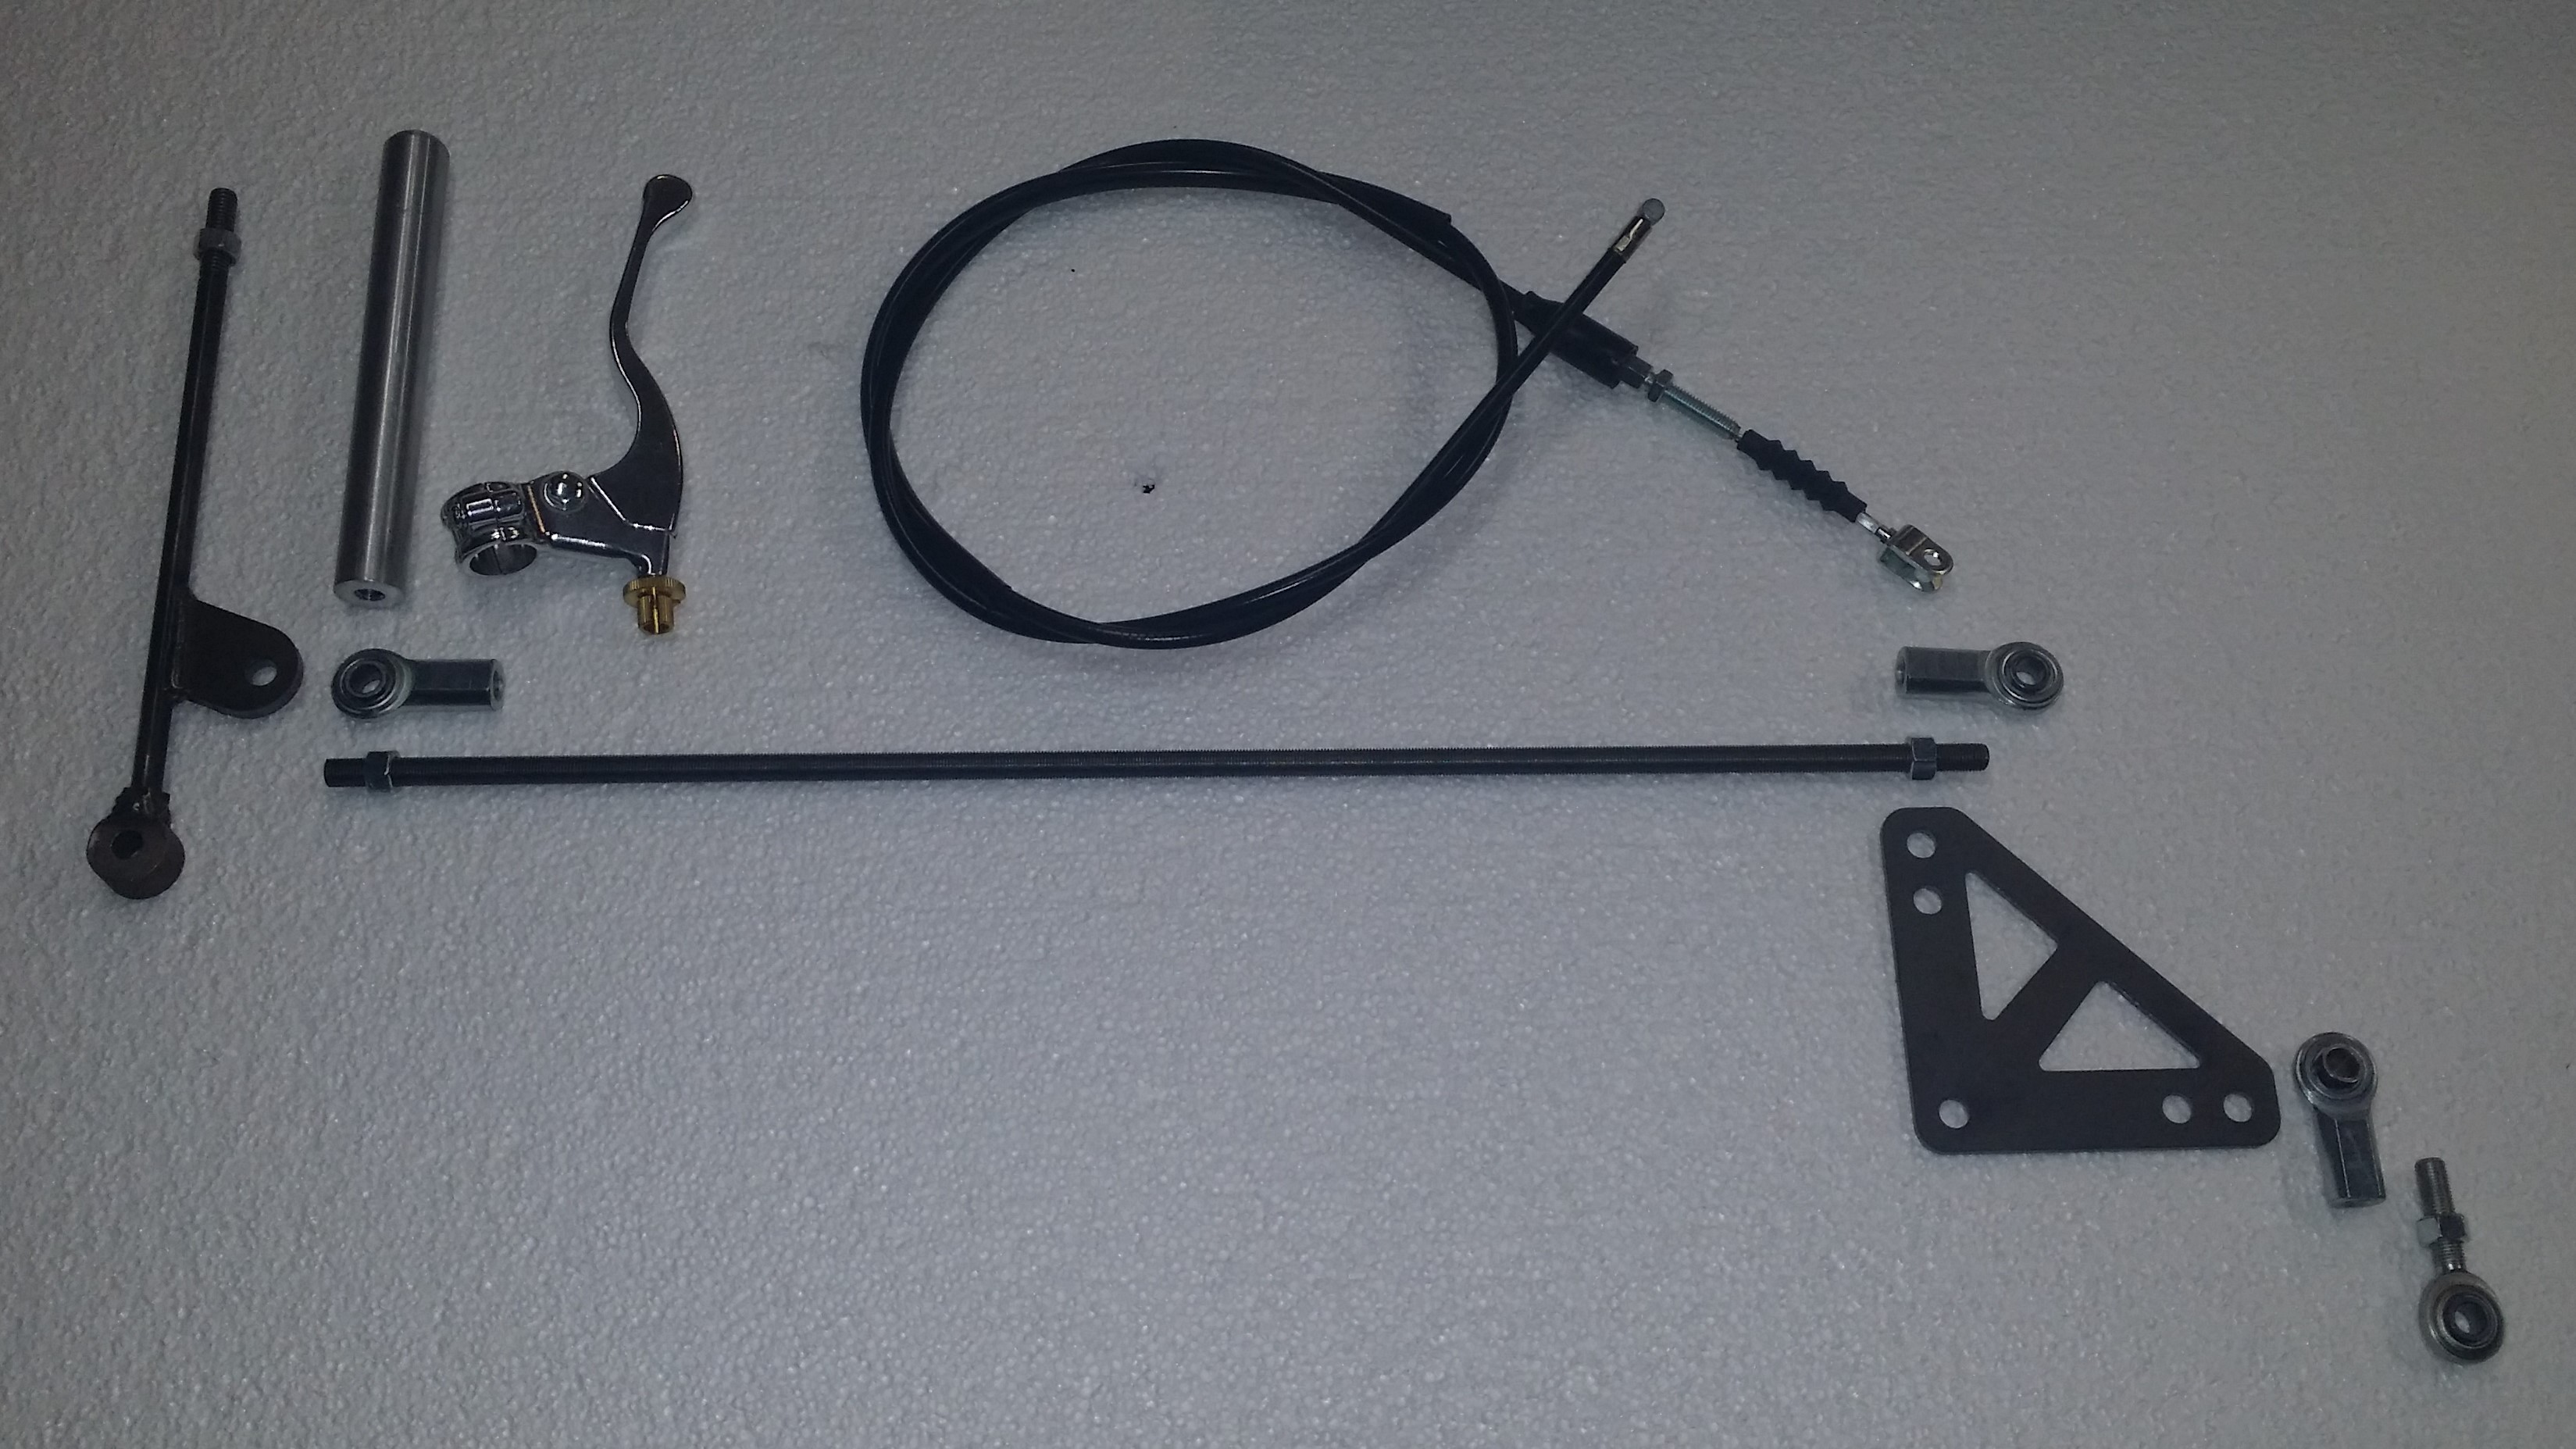 Dwarf Car Wiring Harness Diagram Libraries Fram Hpgc1 Fuel Filter Racing Modified Lite Race Parts Gsxr 1000 750 600 Motorshand Clutch Shifter Kit Complete